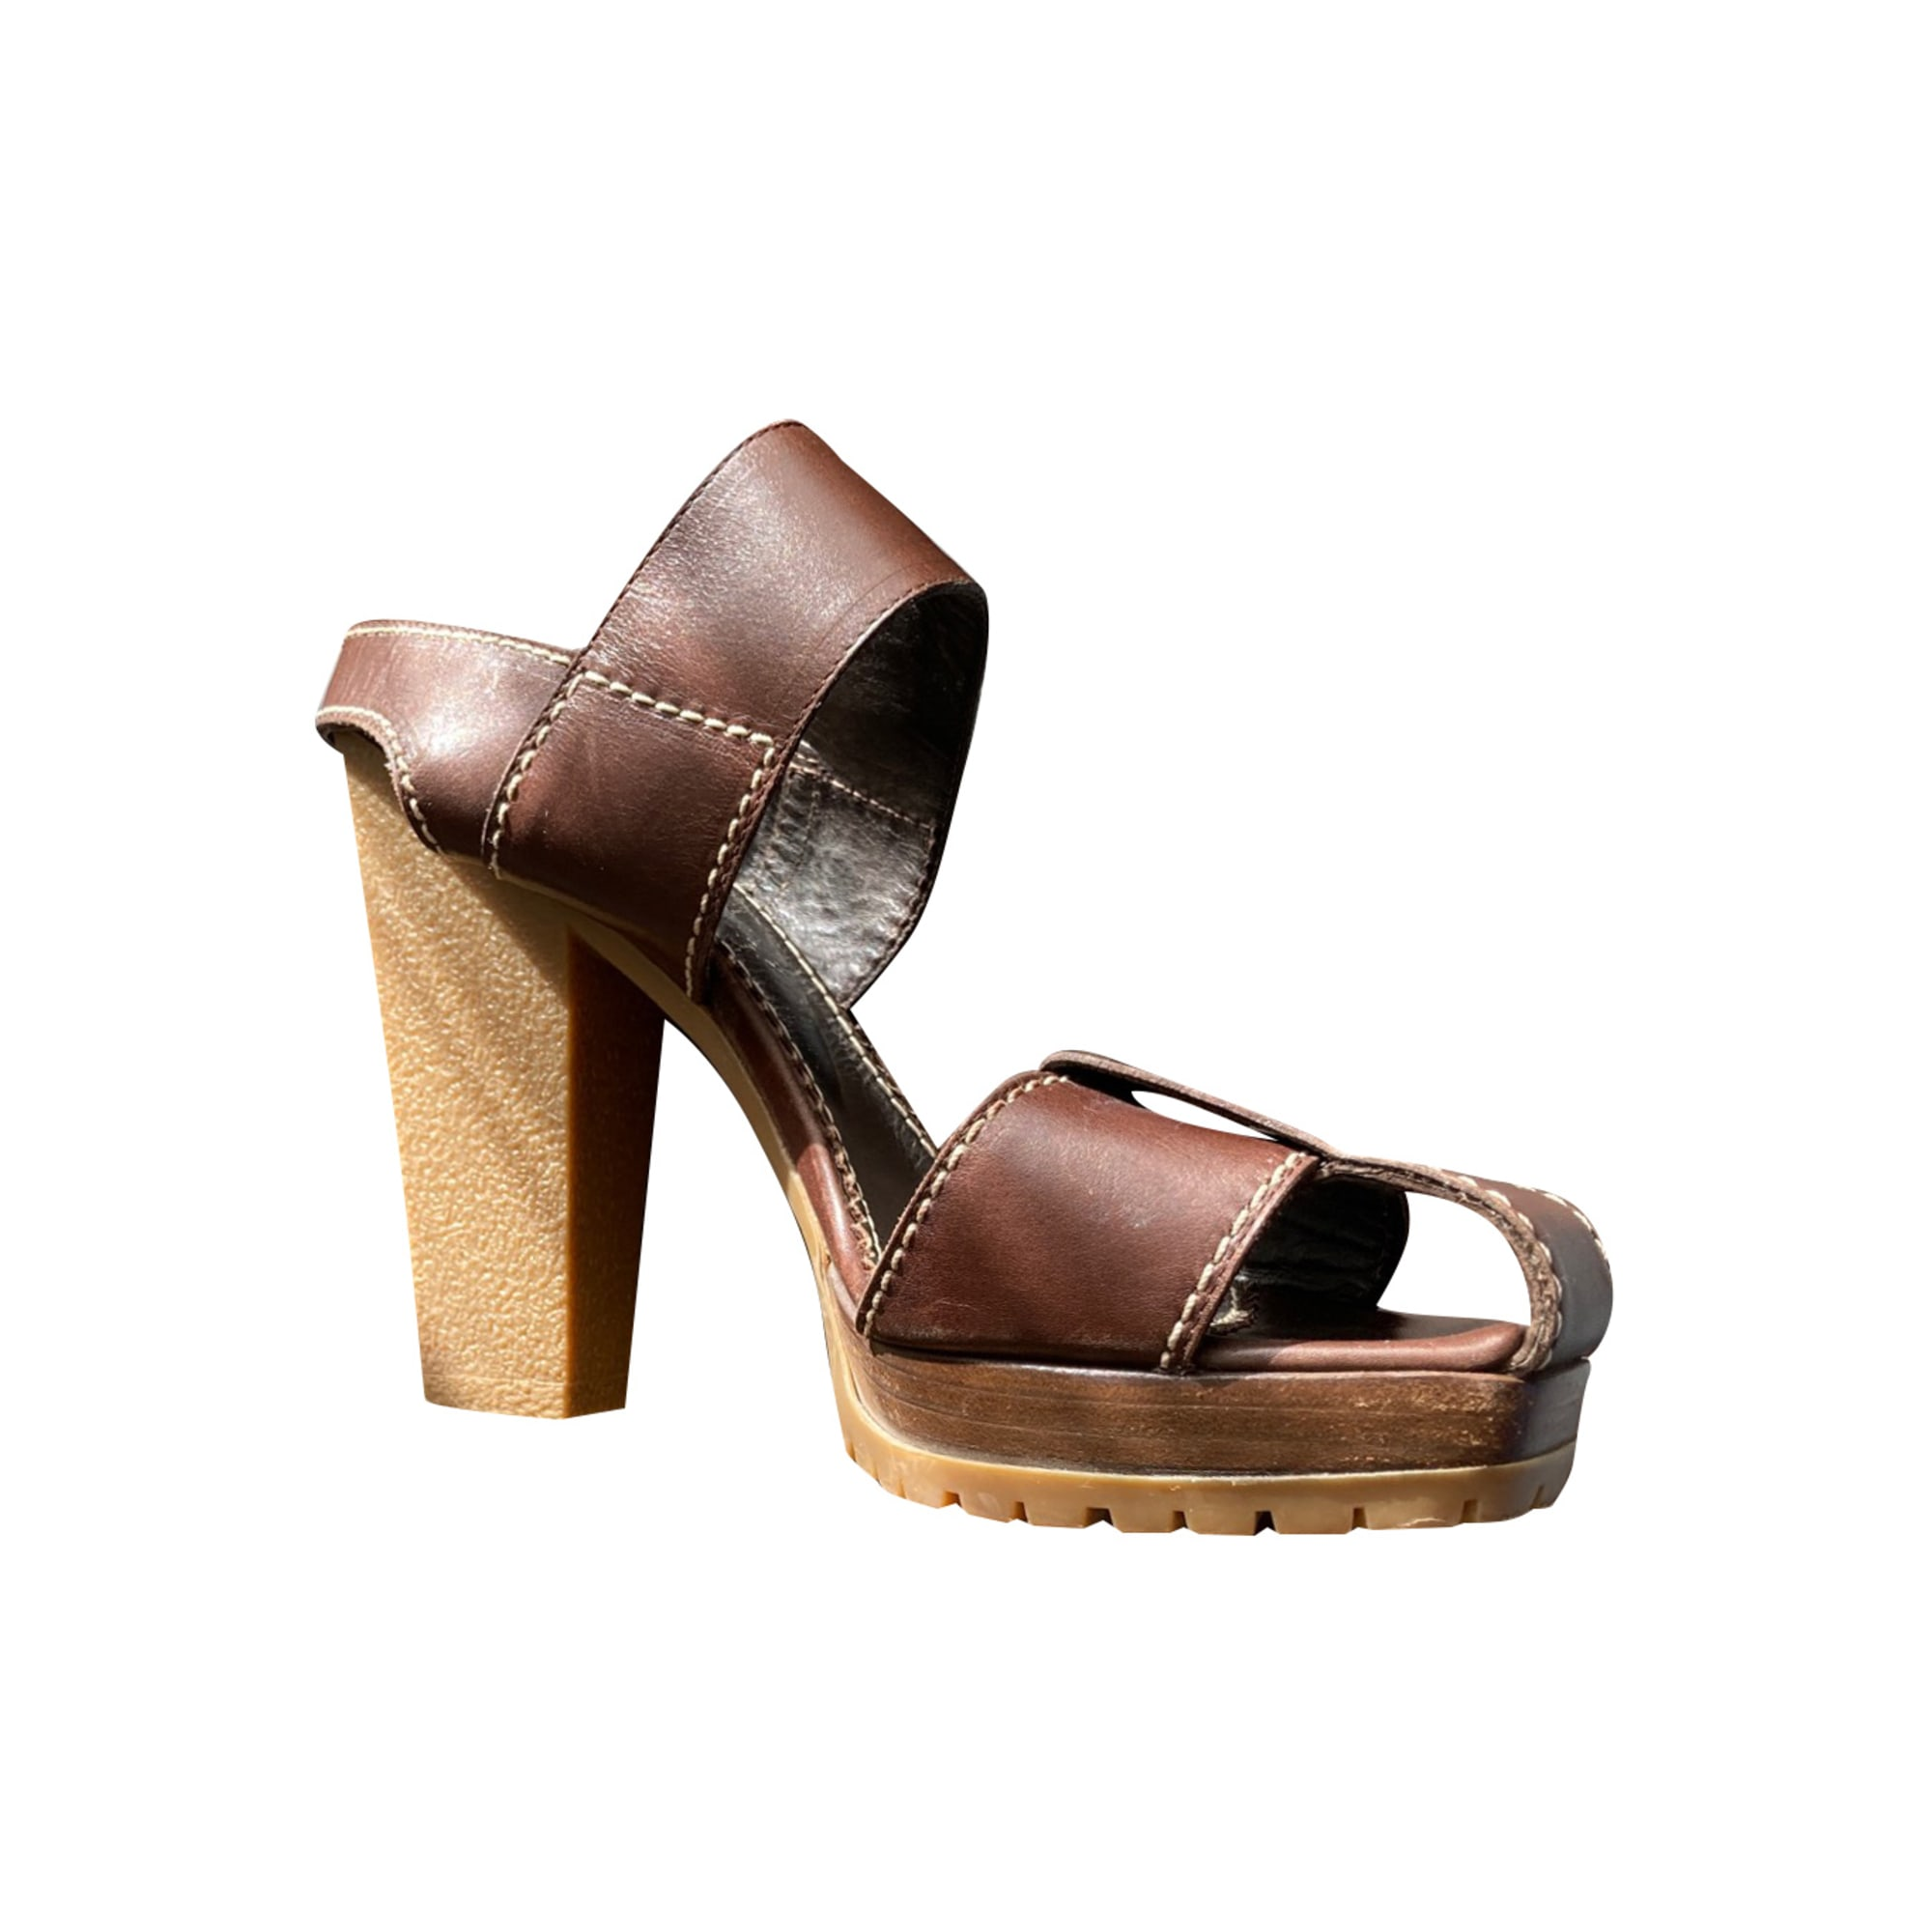 Heeled Sandals YVES SAINT LAURENT Brown